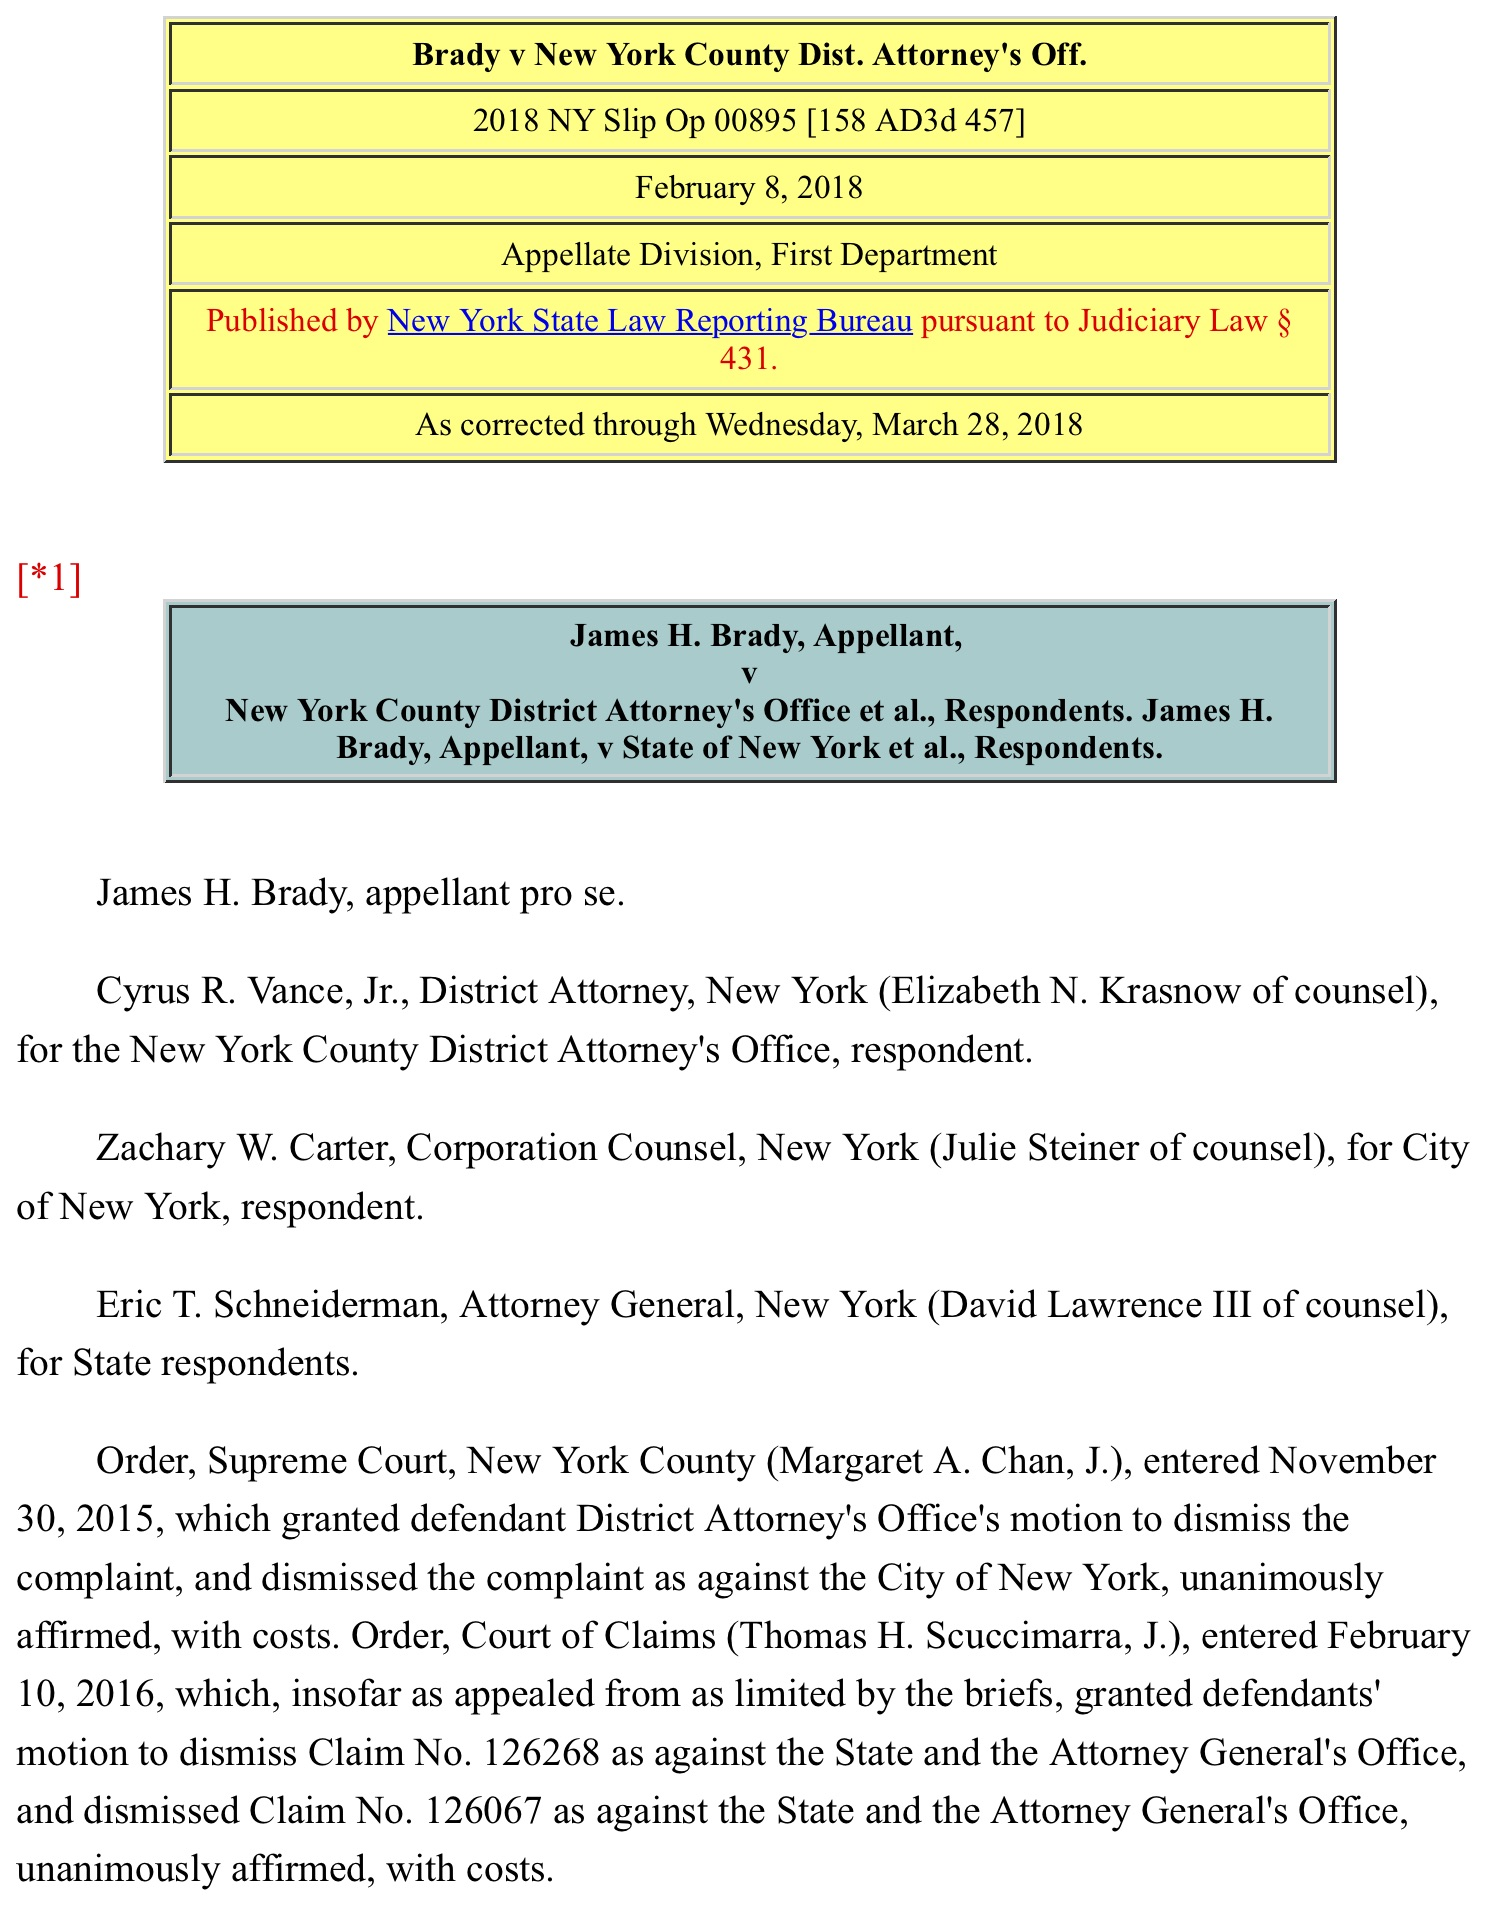 Brady v New York County Dist. Attorney's Off. (2018 NY Slip Op 00895)2.jpg